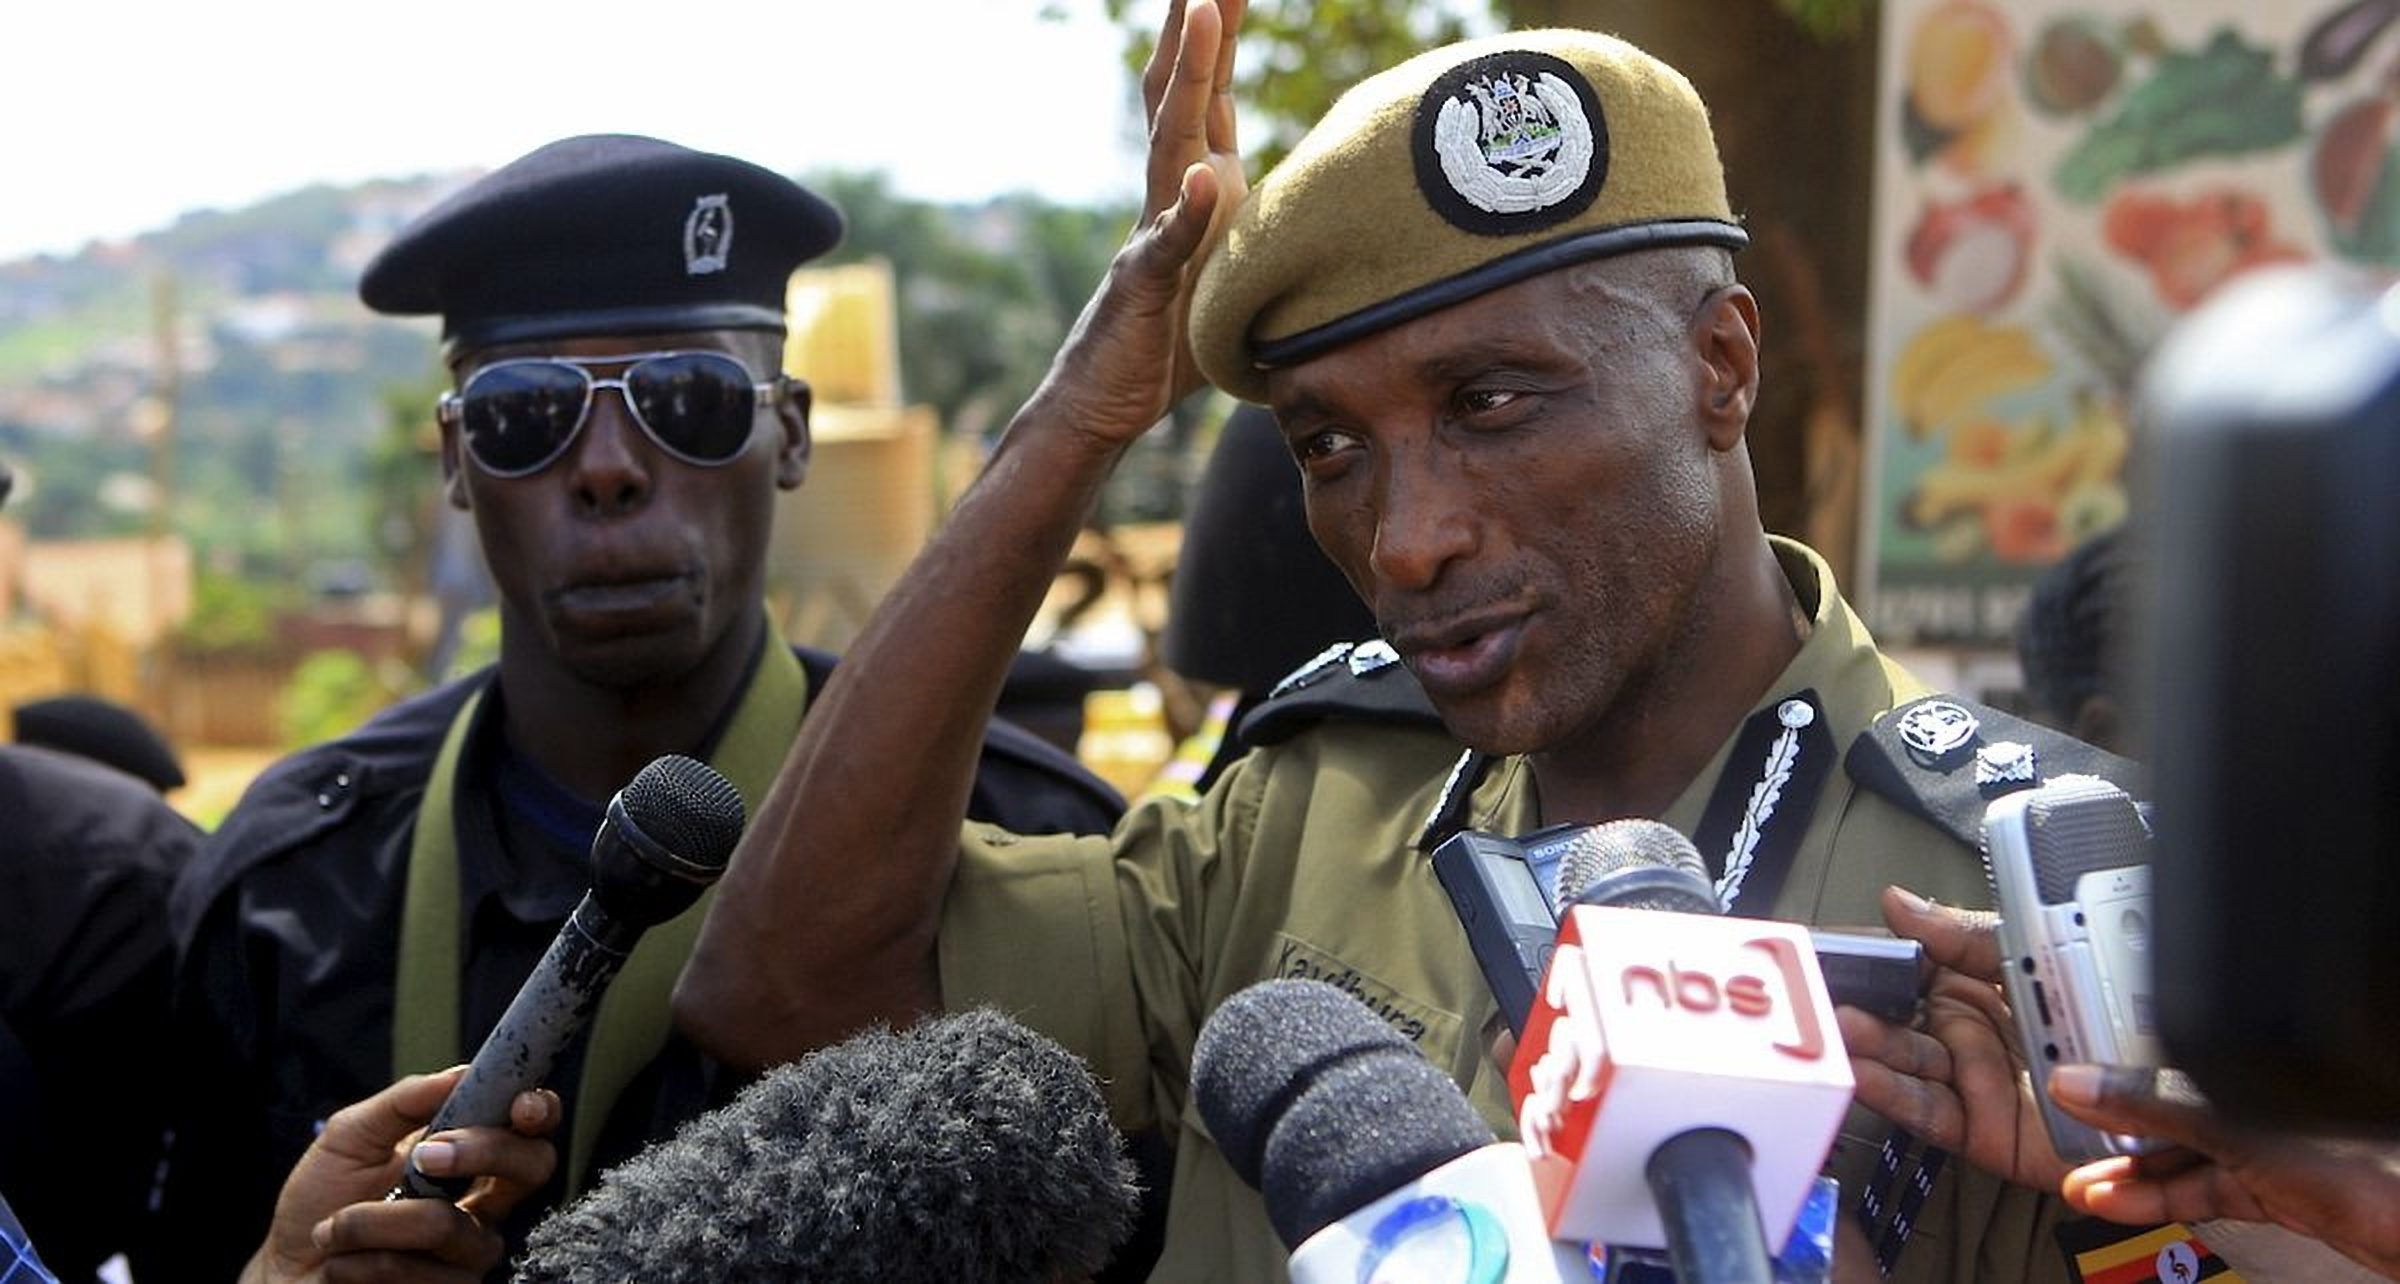 Former Inspector General of Police Kale Kayihura faces travel sanctions over human rights violation. (PHOTO/File)